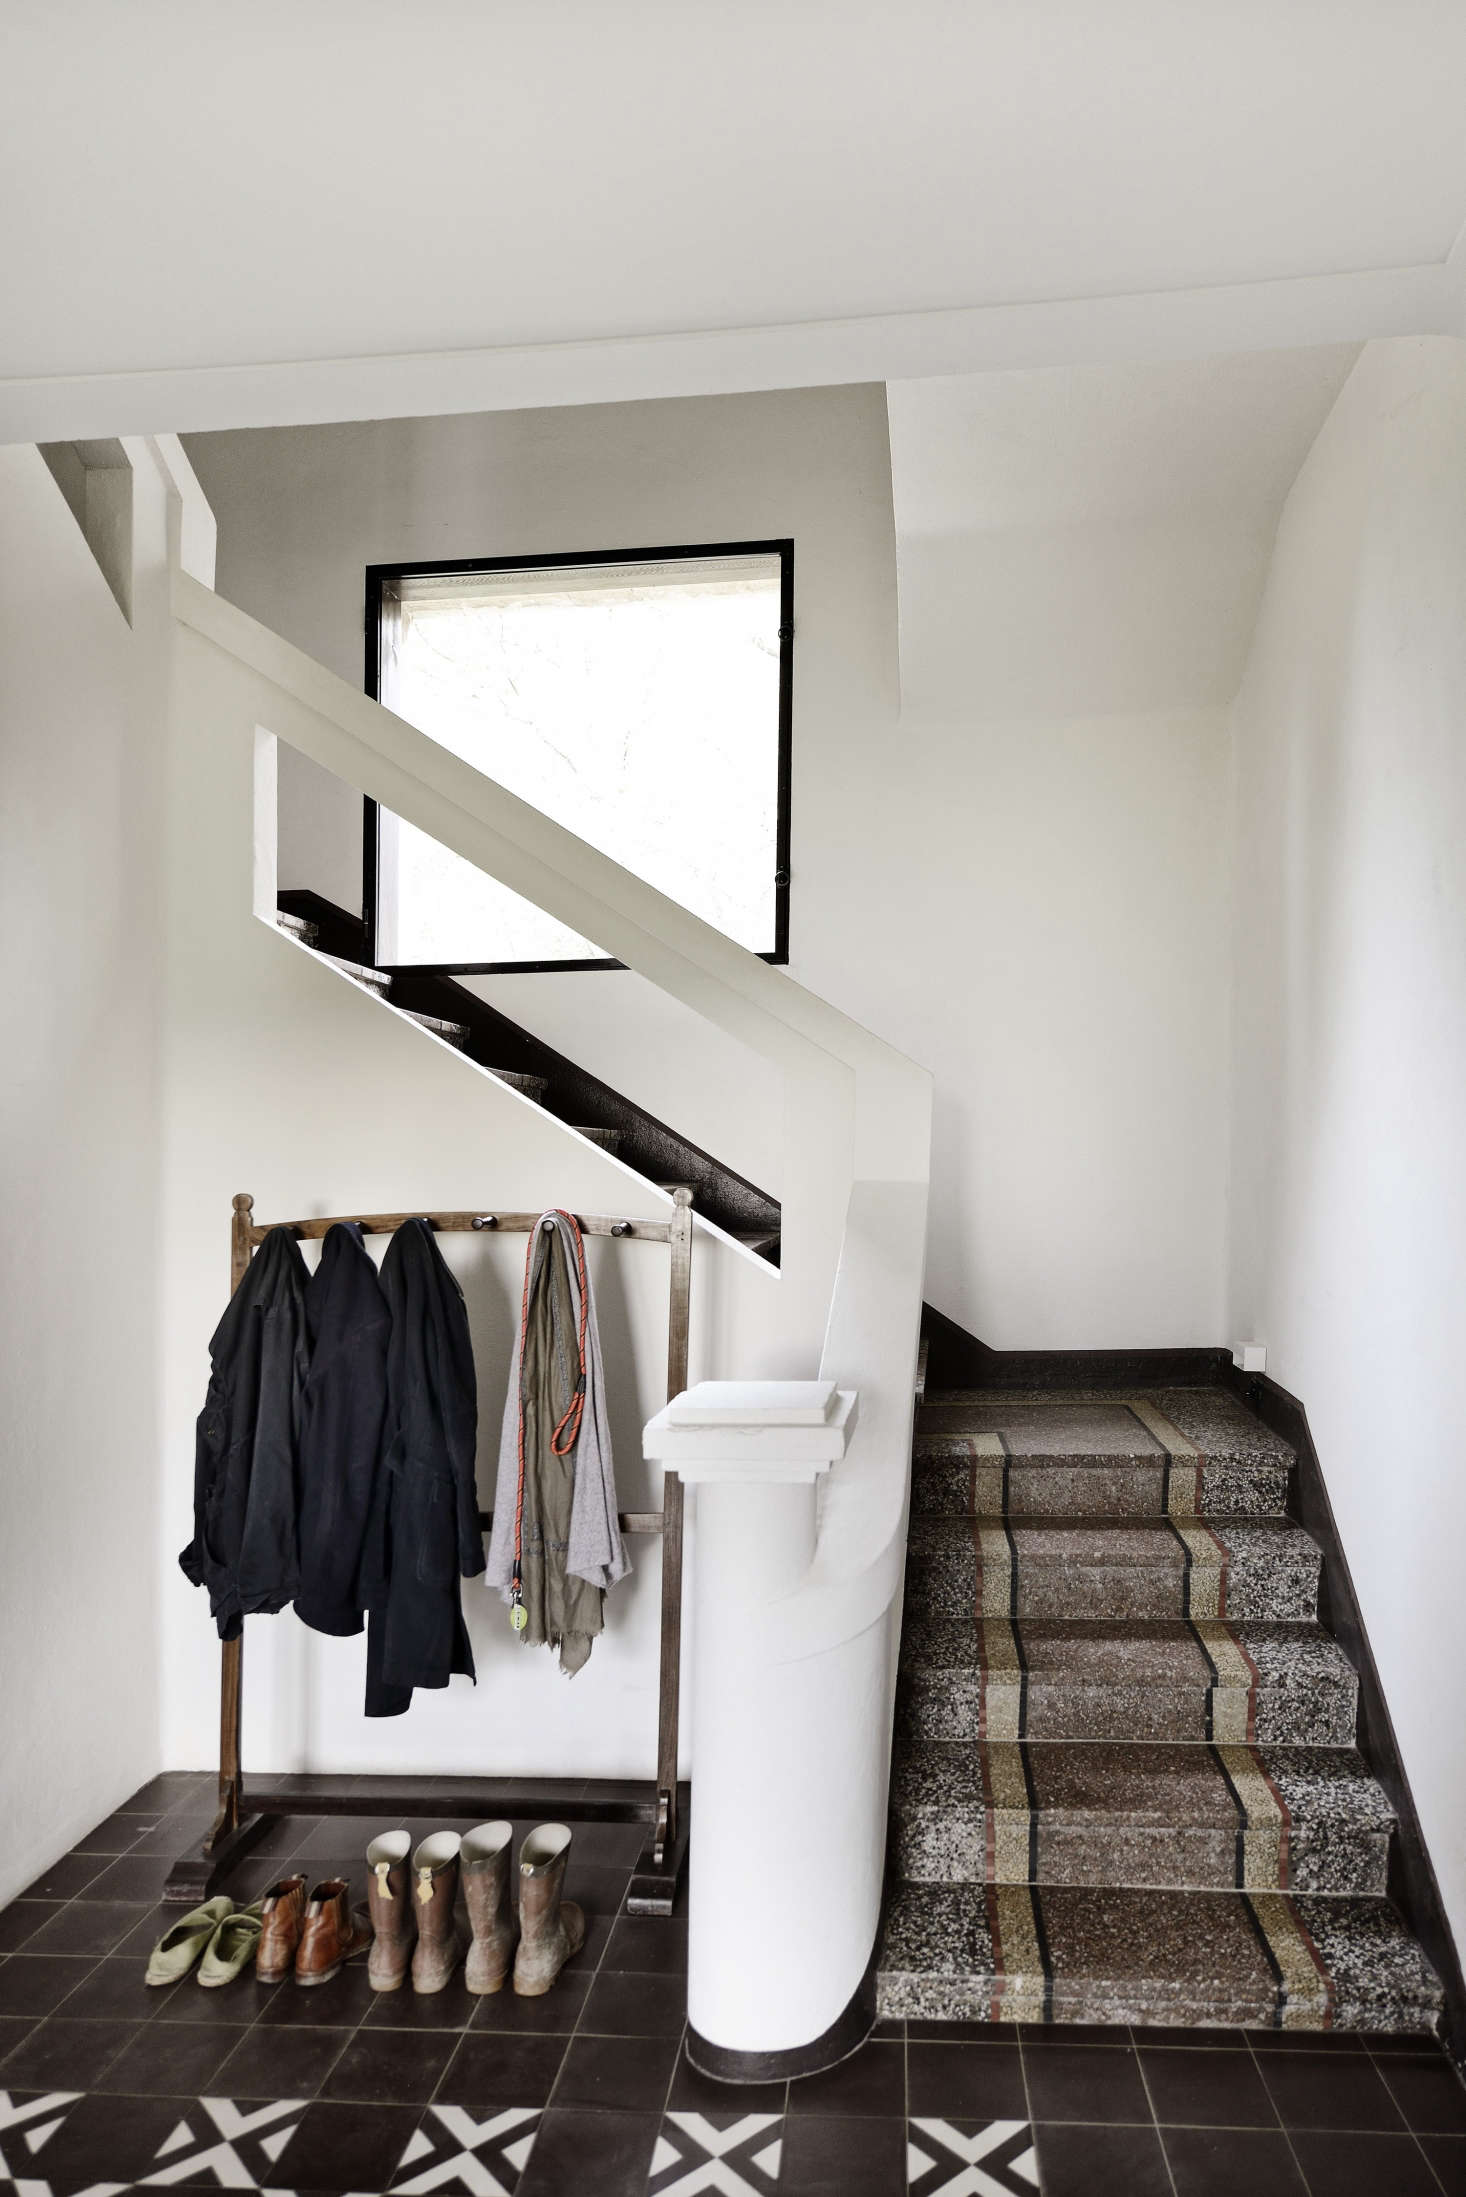 The entry features restored terrazzo stairs and brown-and-white tiles from Carocim of Aix-en-Provence, specialists in classic cement tiles. The oak hanging rack is vintage.